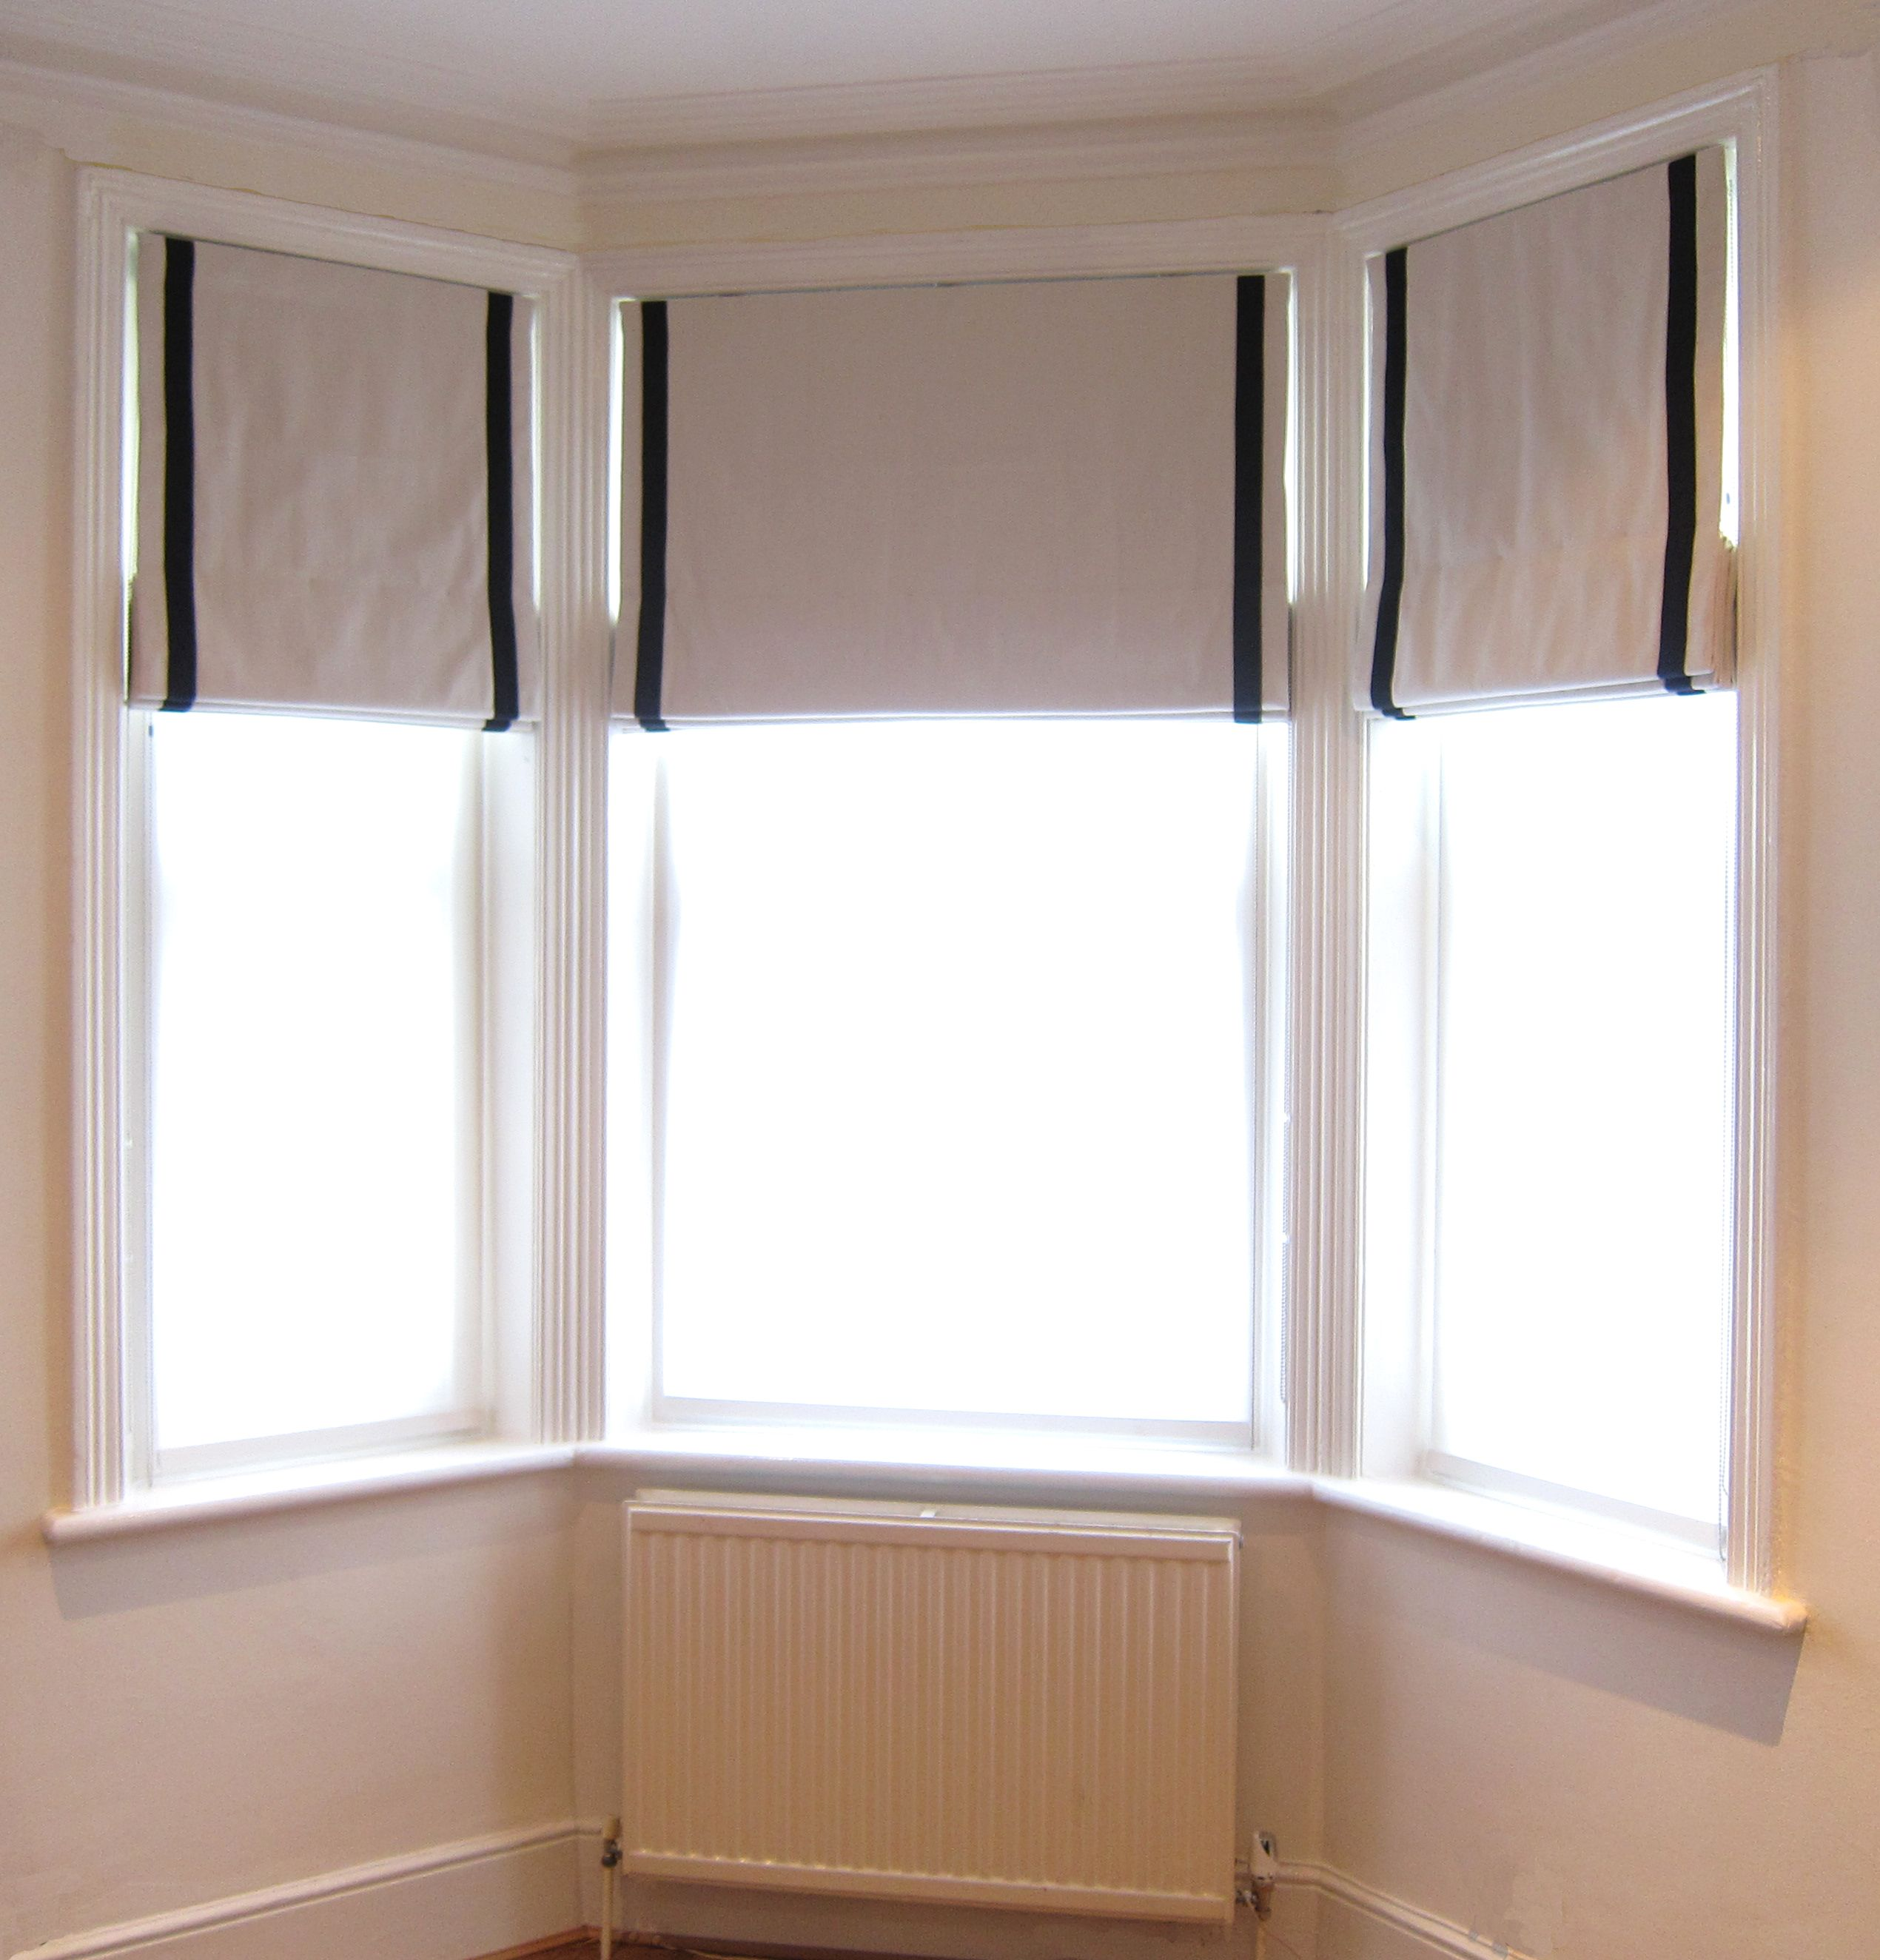 Window Bay Window With Roman Blinds